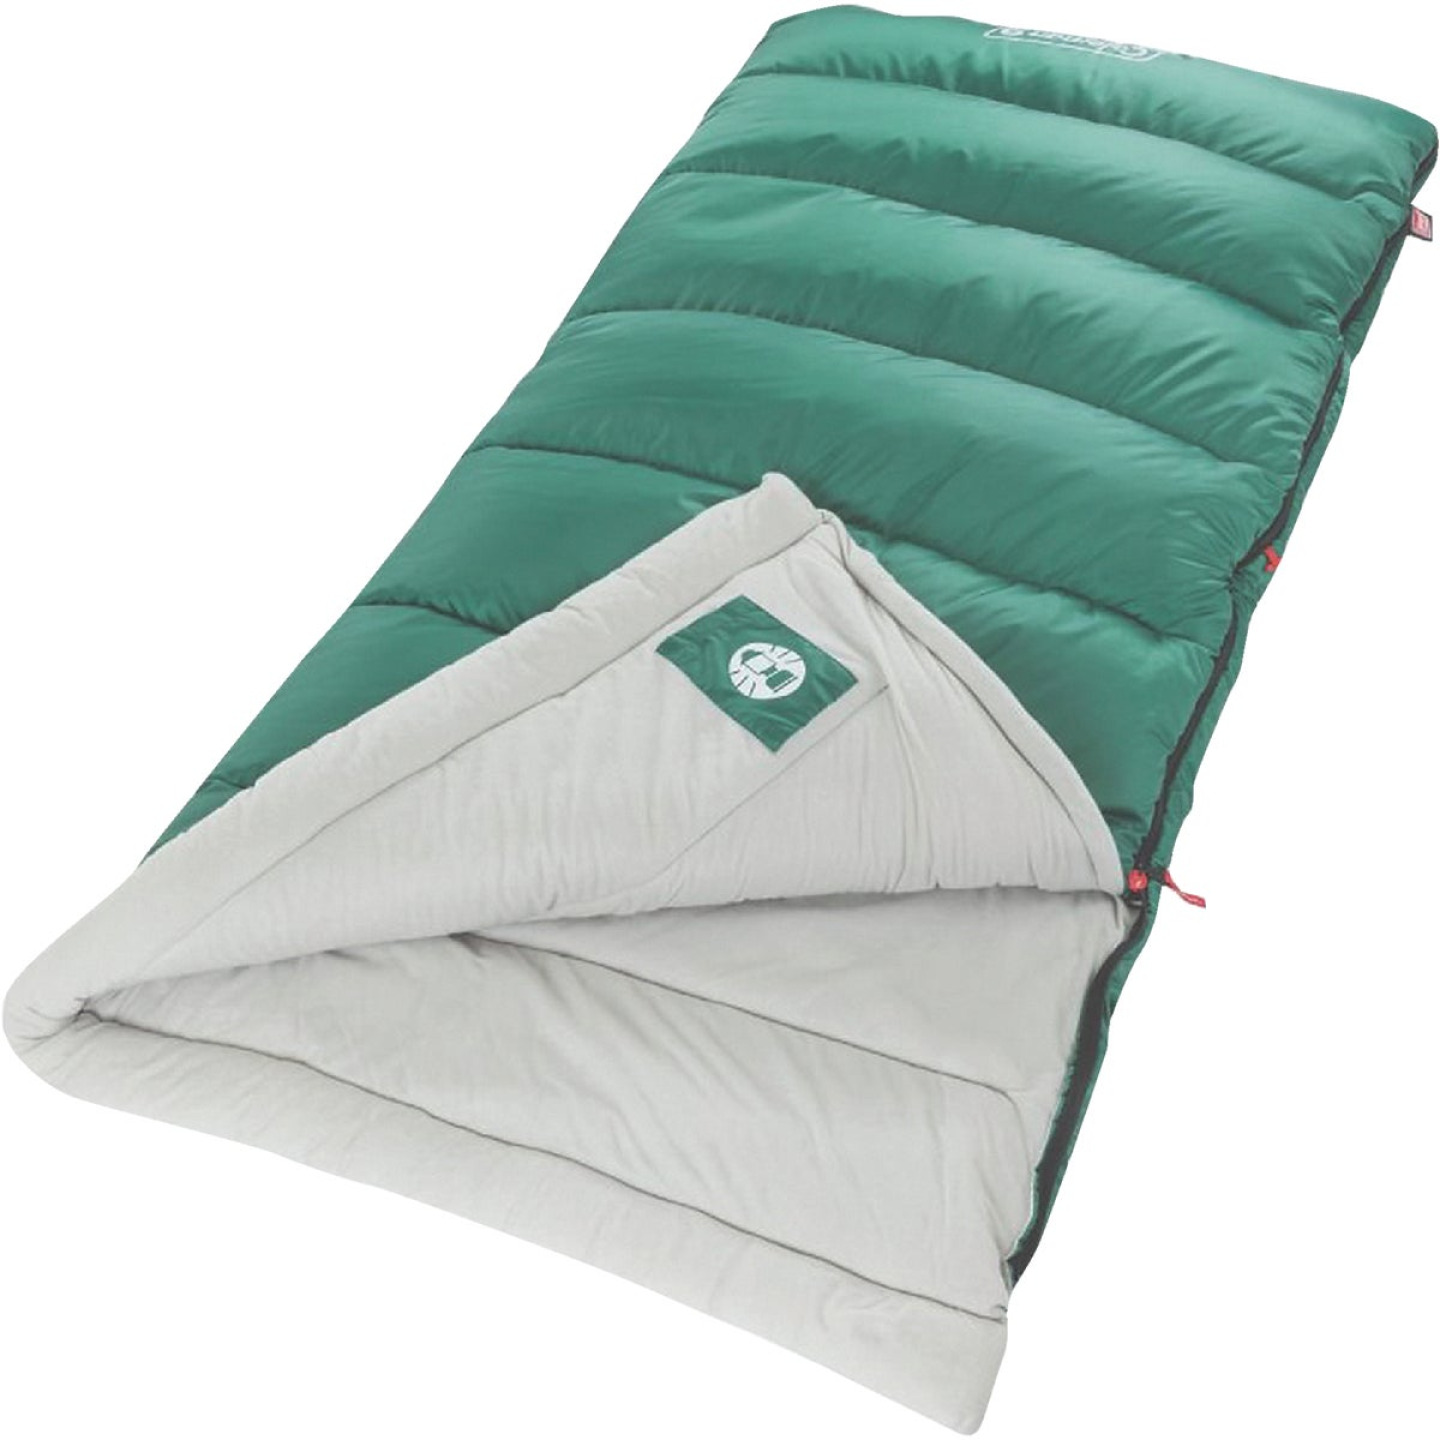 Coleman 40 Degree 33 In. W. x 75 In. L. Green Adult Sleeping Bag Image 1